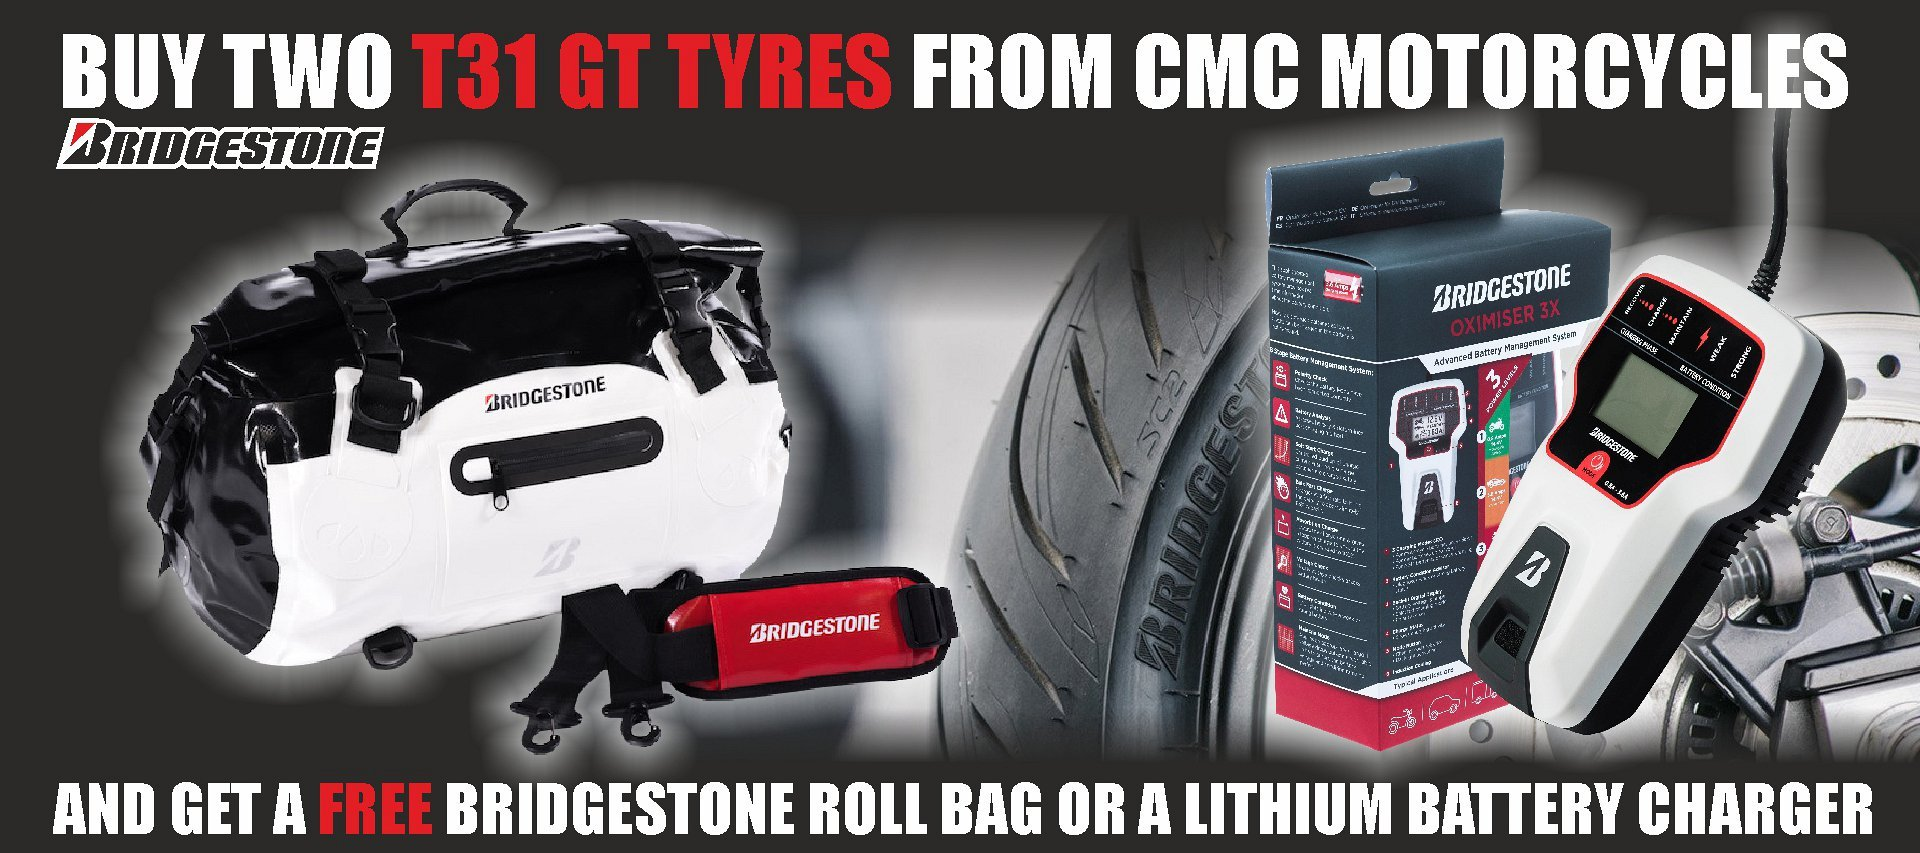 Get a Bridgestone roll bag or a lithium battery charger - FREE